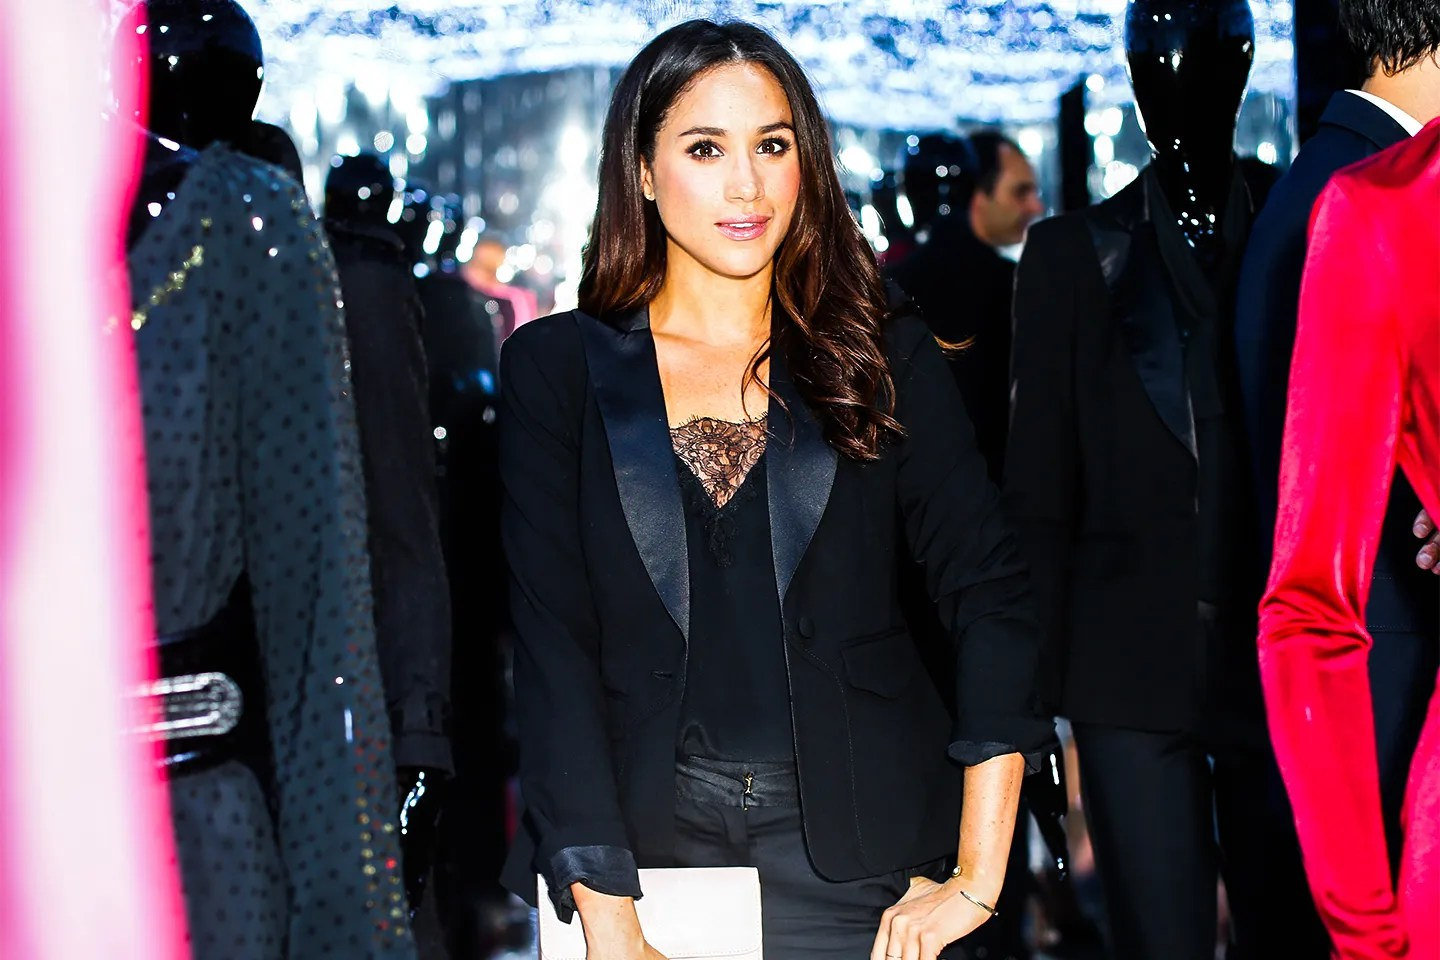 Tom Tailor Winter Love A Fashion Friend An Extremely Detailed Analysis Of Meghan Markle S Lifestyle Blog